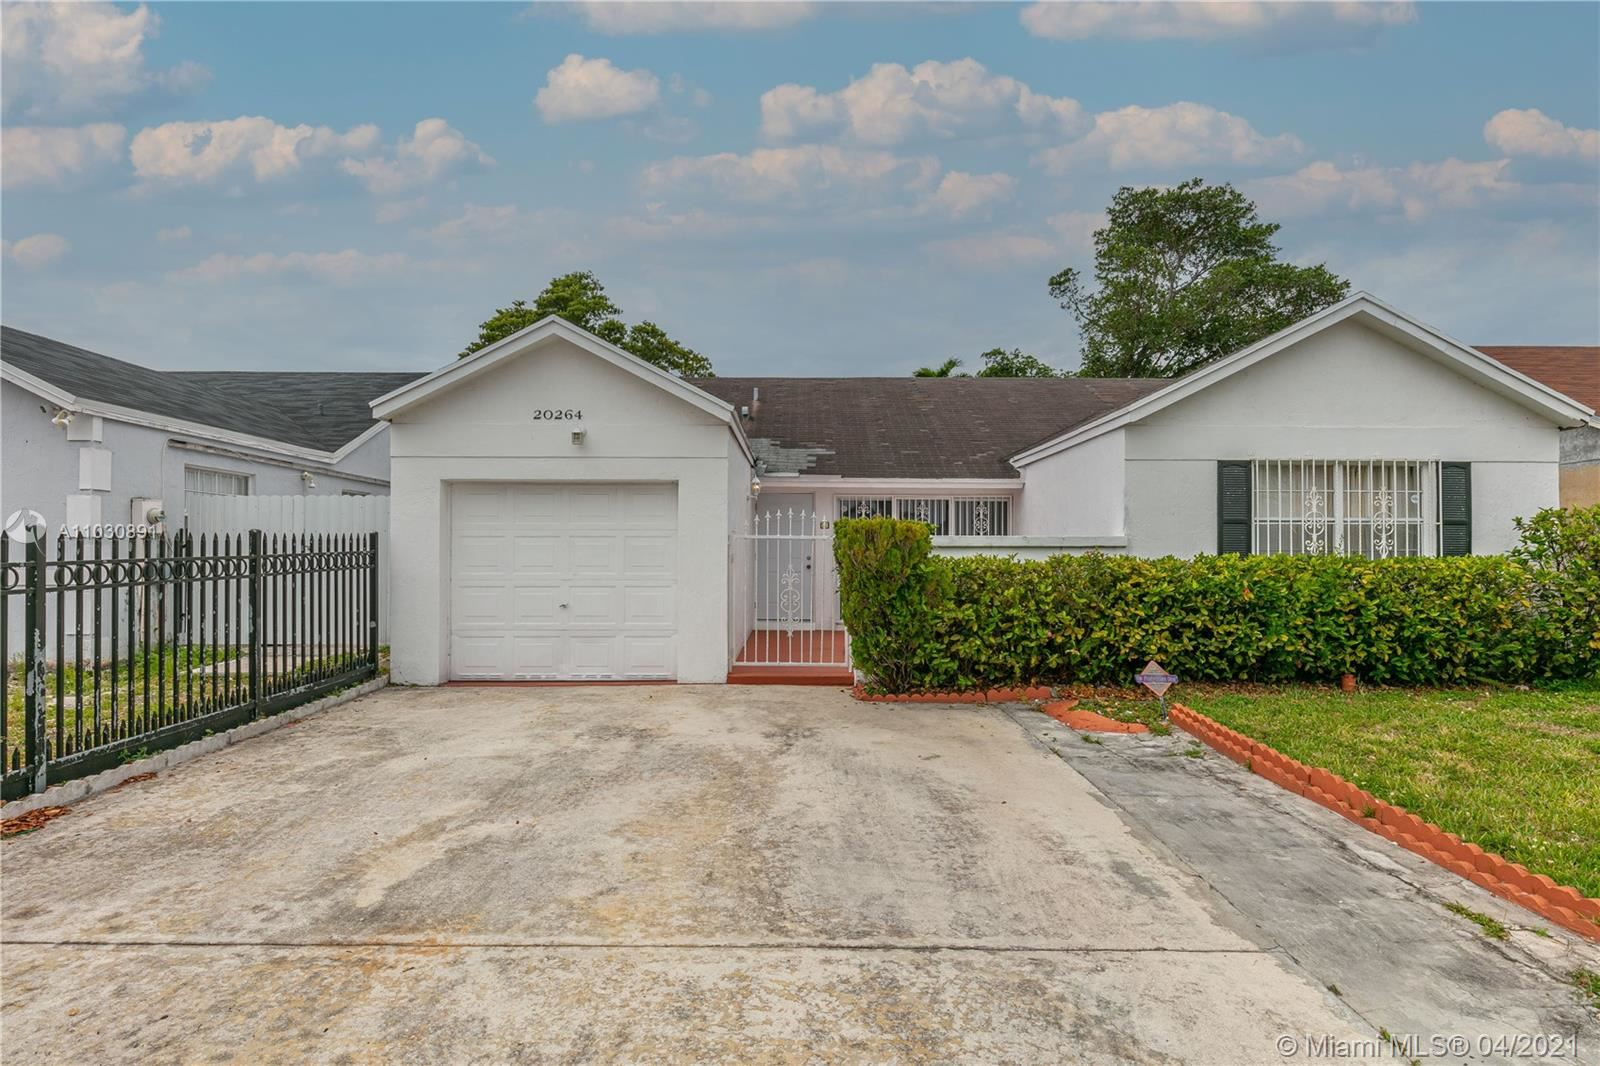 20264 NW 32nd Ave, Miami Gardens, FL 33056 - #: A11030891